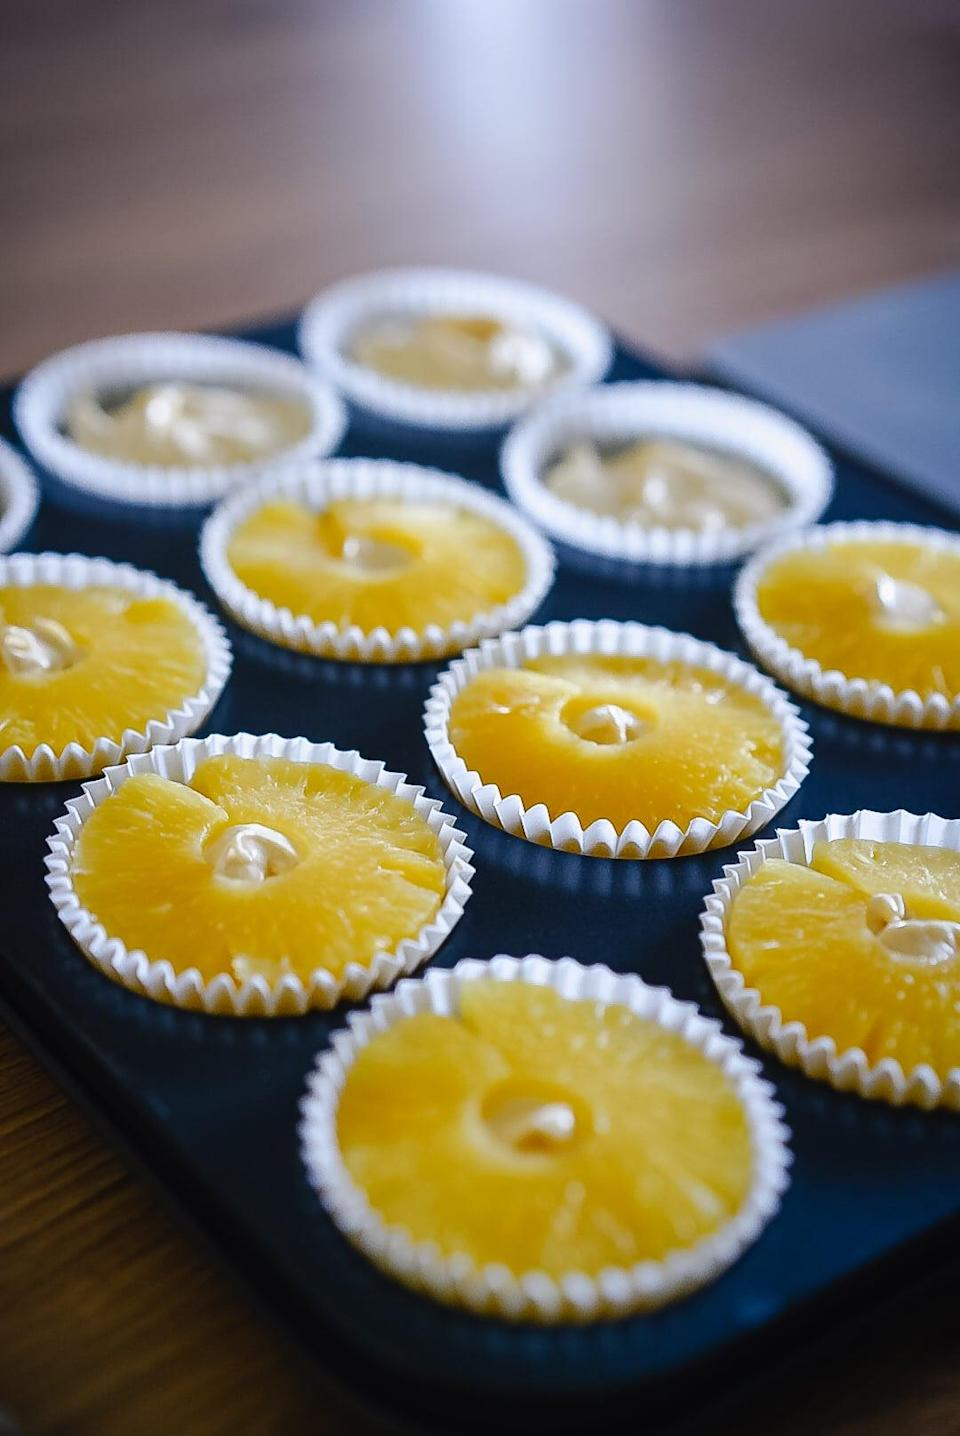 <p><strong>Method:</strong></p> <ol> <li>Preheat oven to 170 fan and line a 12-hole cupcake tin with paper cases.</li> <li>Cut a piece out of each pineapple ring so they fit into paper cases. </li> <li>Beat butter and sugar together until light and fluffy, then add eggs, flour, bicarb, and vanilla and mix well. Add enough milk to loosen mixture a little. </li> <li>Fill each paper case 3/4 full, then top with pineapple ring. Scatter a little Demerara sugar onto each cupcake and bake for 20-25 minutes or until skewer comes out clean.</li> <li>Place jam into piping bag and snip the end. Once cupcakes are cooled, poke a little hole into each cupcake with a skewer and pipe in the cherry jam.</li> <li>To make the buttercream, beat butter then add icing sugar until smooth and light. Add coconut extract and enough milk to loosen. </li> <li>Place buttercream into piping bag with a round nozzle and pipe a swirl on top. Roll cupcake into toasted coconut, then add a swirl to the top of each one. </li> <li>Place cherries into glitter pot and shake to remove the excess. Top each cupcake with a cherry!</li> </ol>